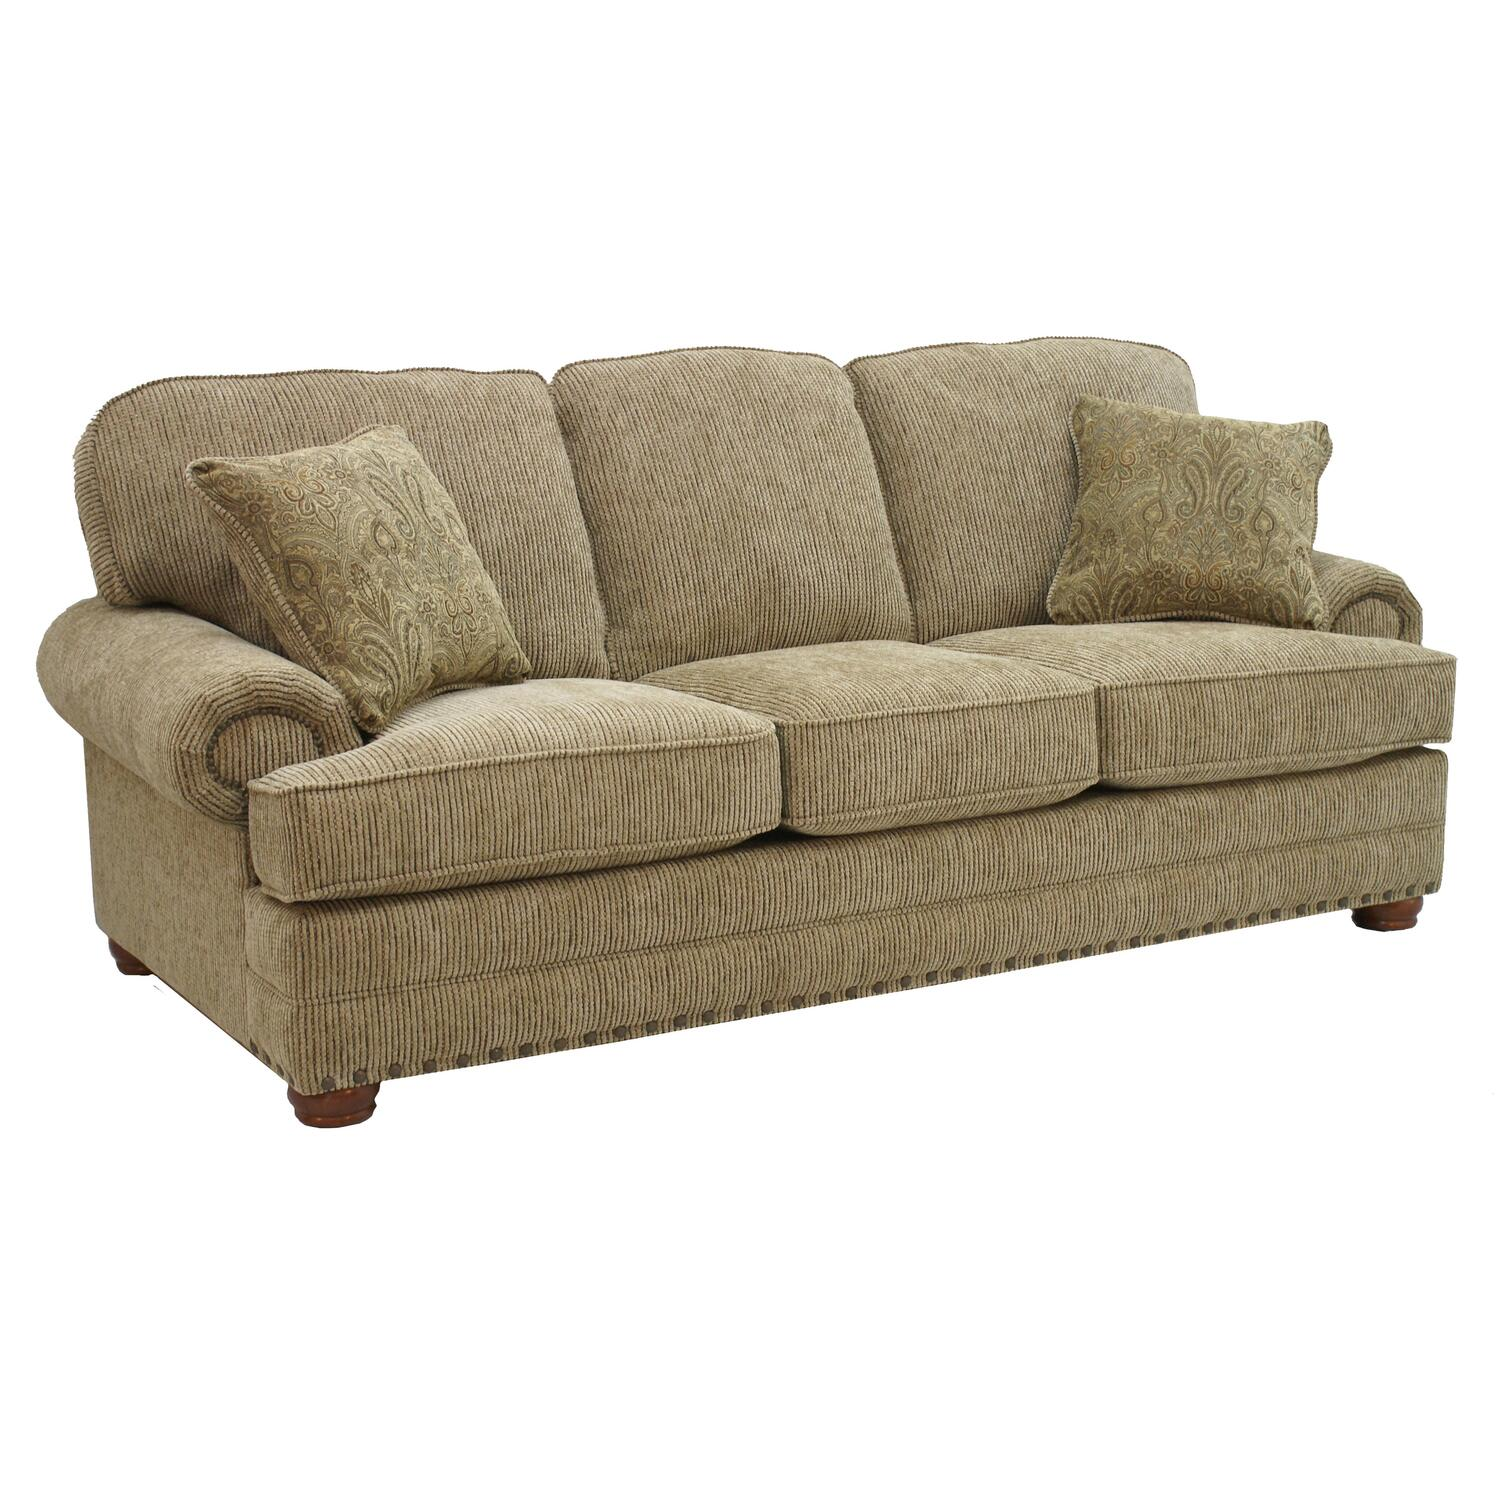 chenille sofa fabric care manufacturers ratings jackson furniture bradford by oj commerce 4293 03